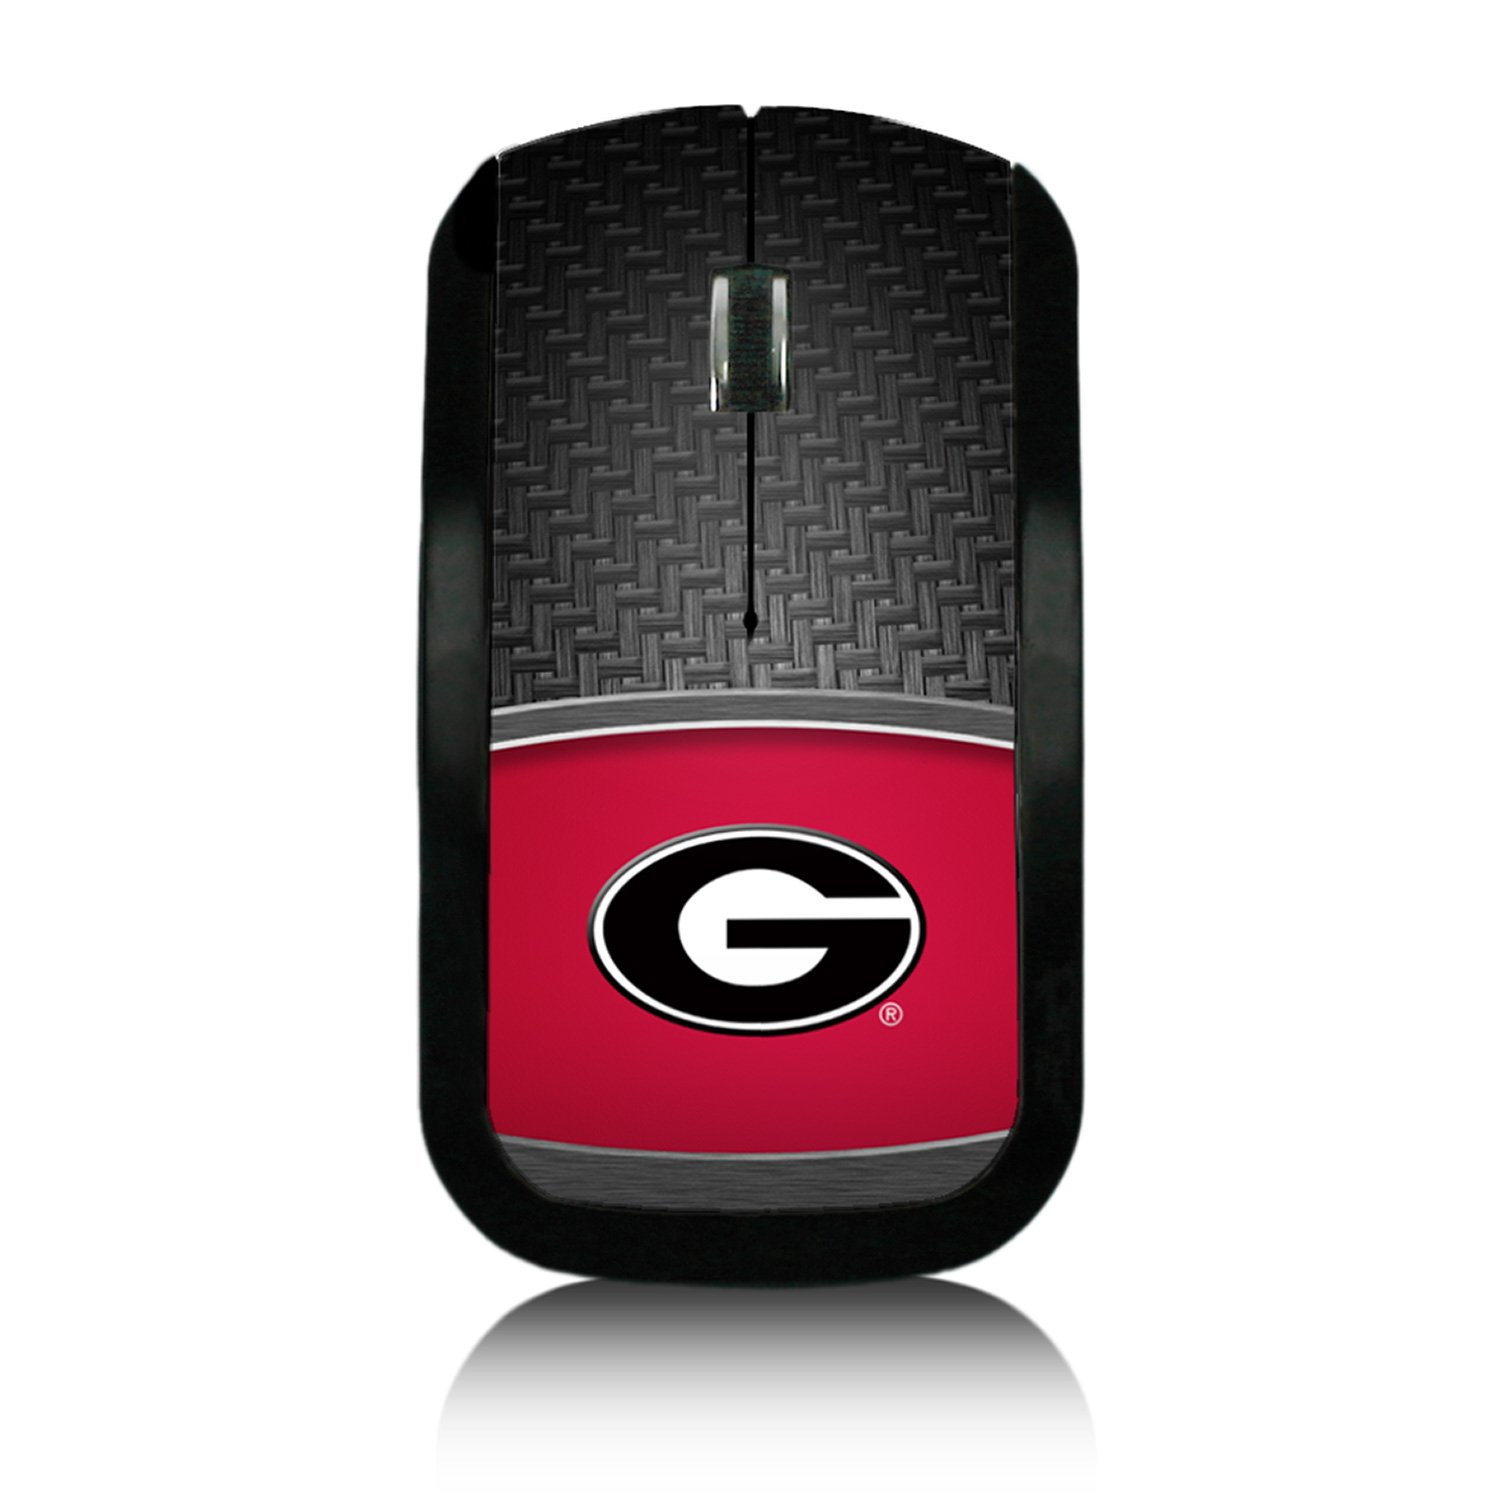 NCAA Wireless USB Mouse by Keyscaper in Prime